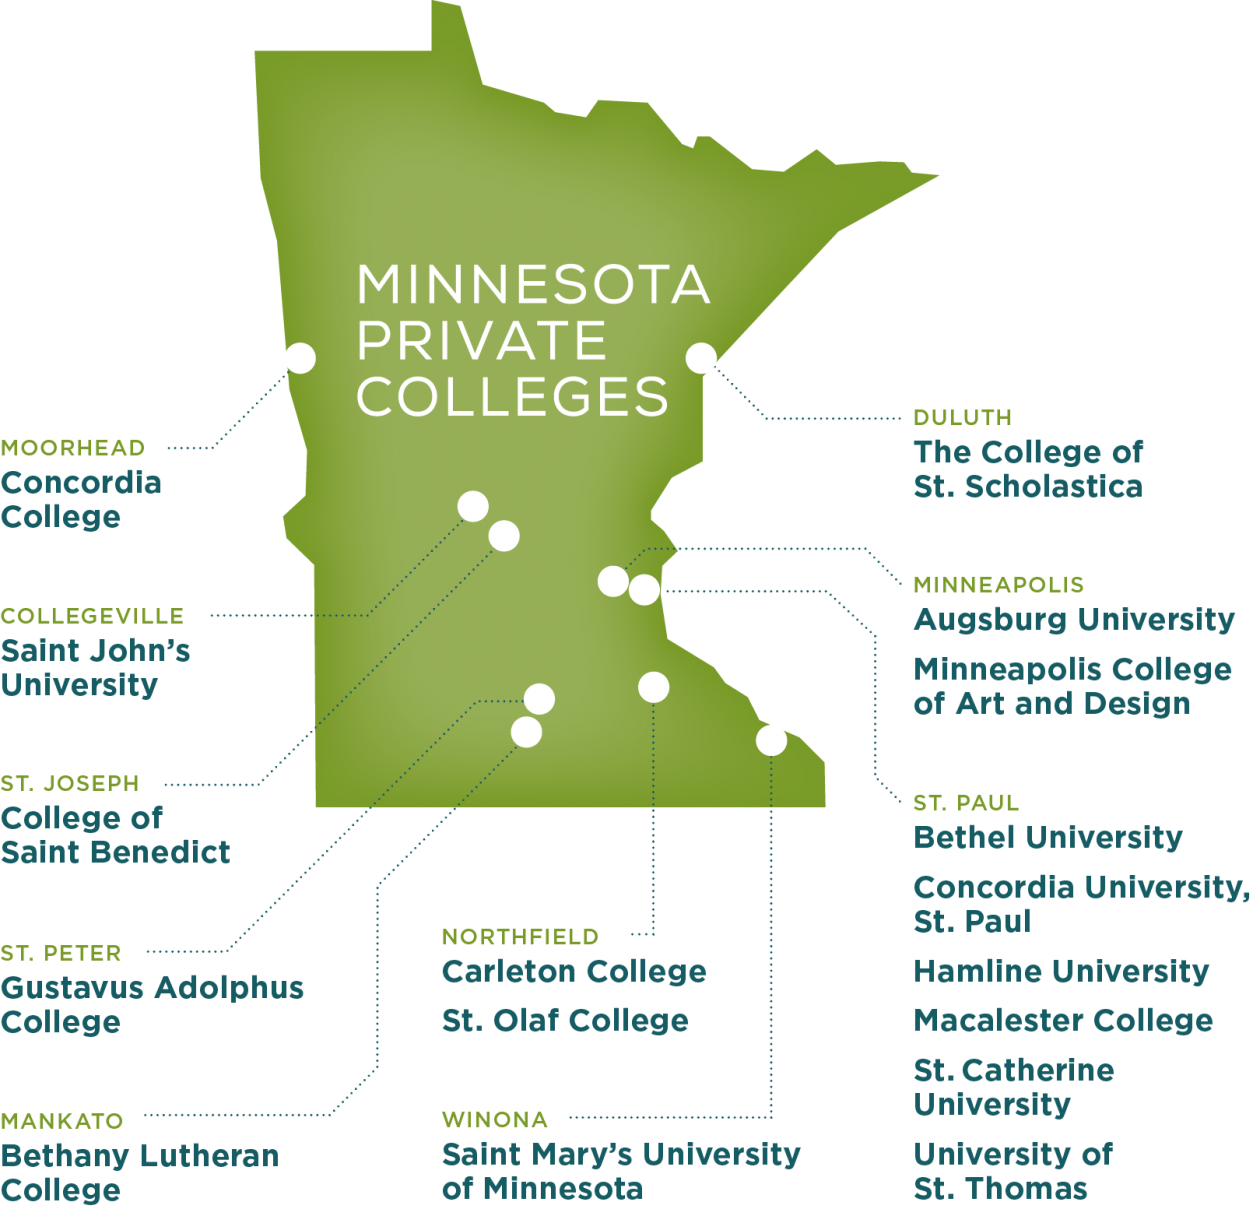 campus locations on map of Minnesota